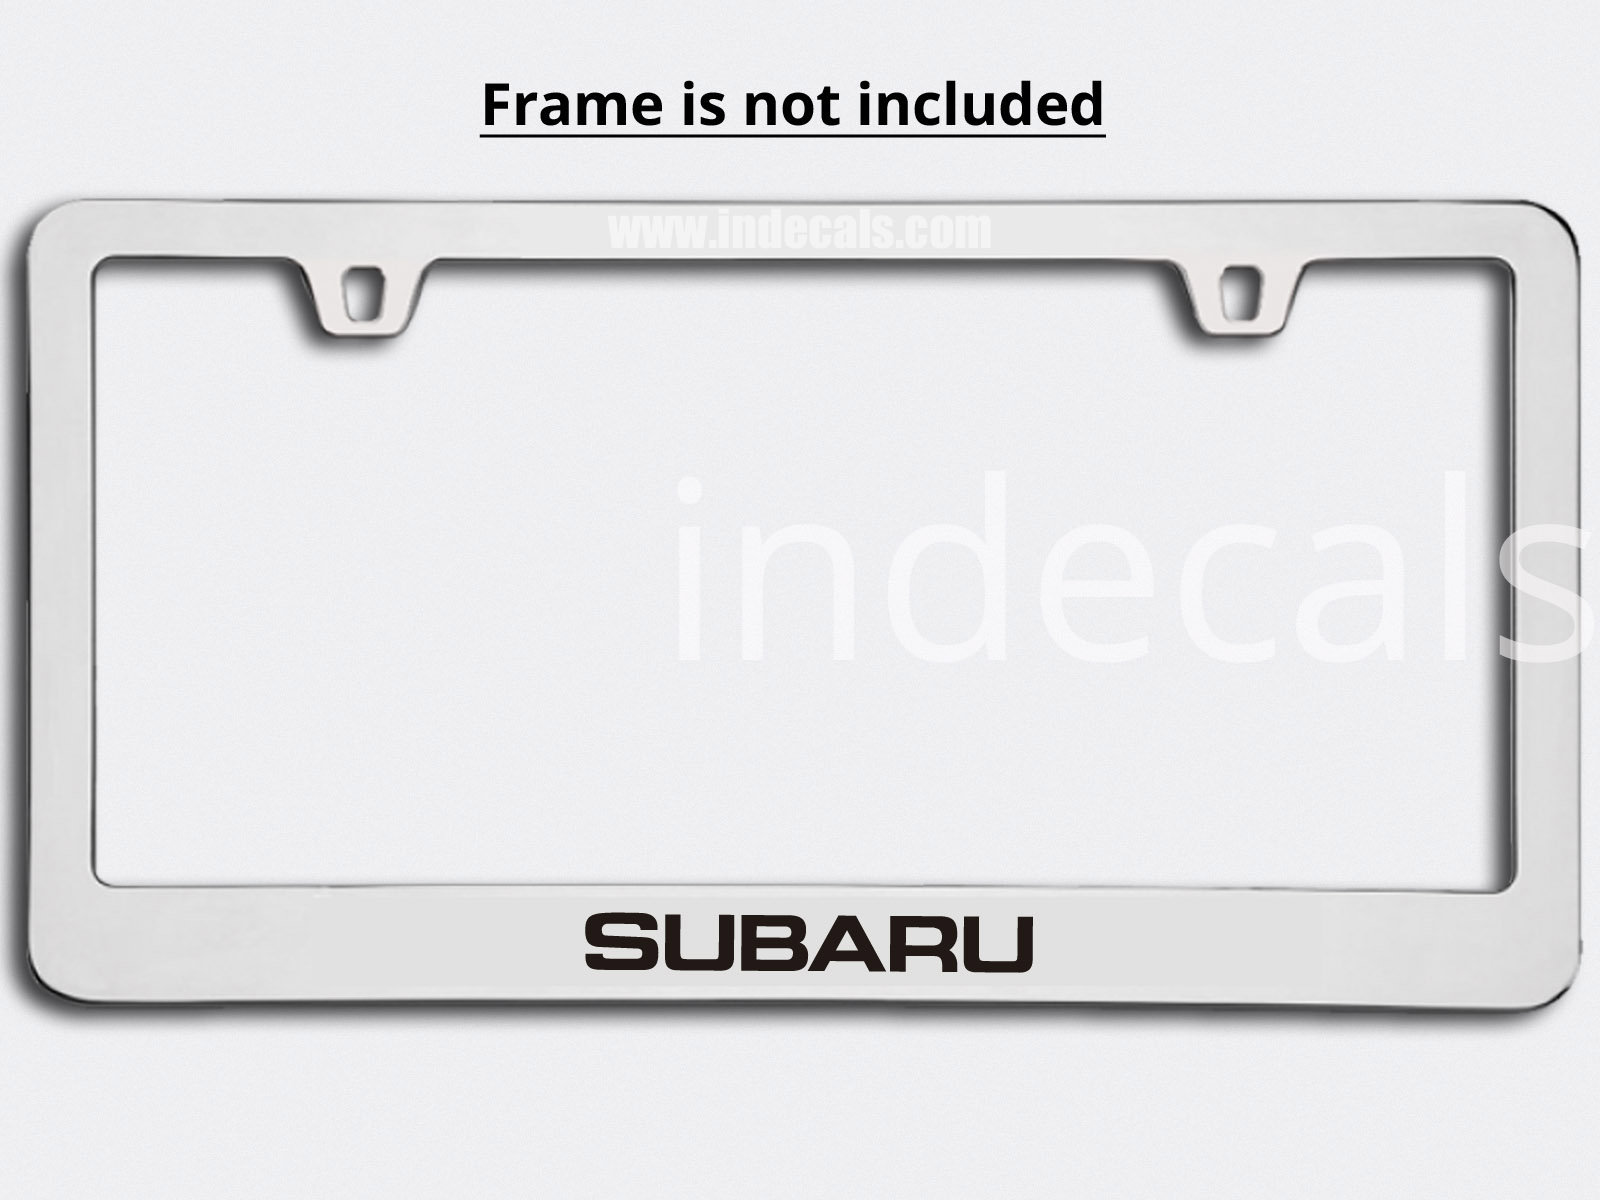 3 x Subaru Stickers for Plate Frame - Black